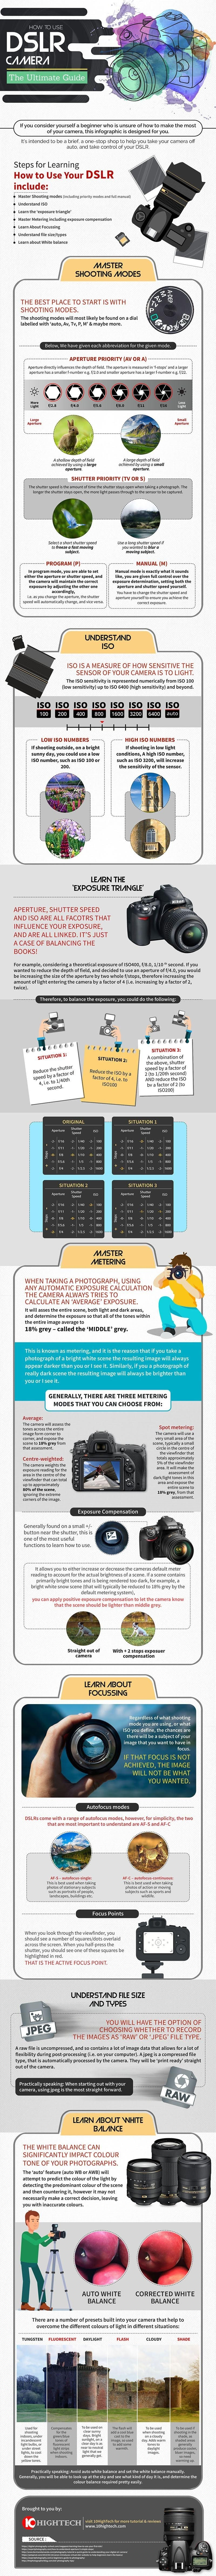 HOW TO TAKE PHOTO STUNNING WITH DSLR CAMERA–GUIDE BEGINNERS: #INFOGRAPHIC